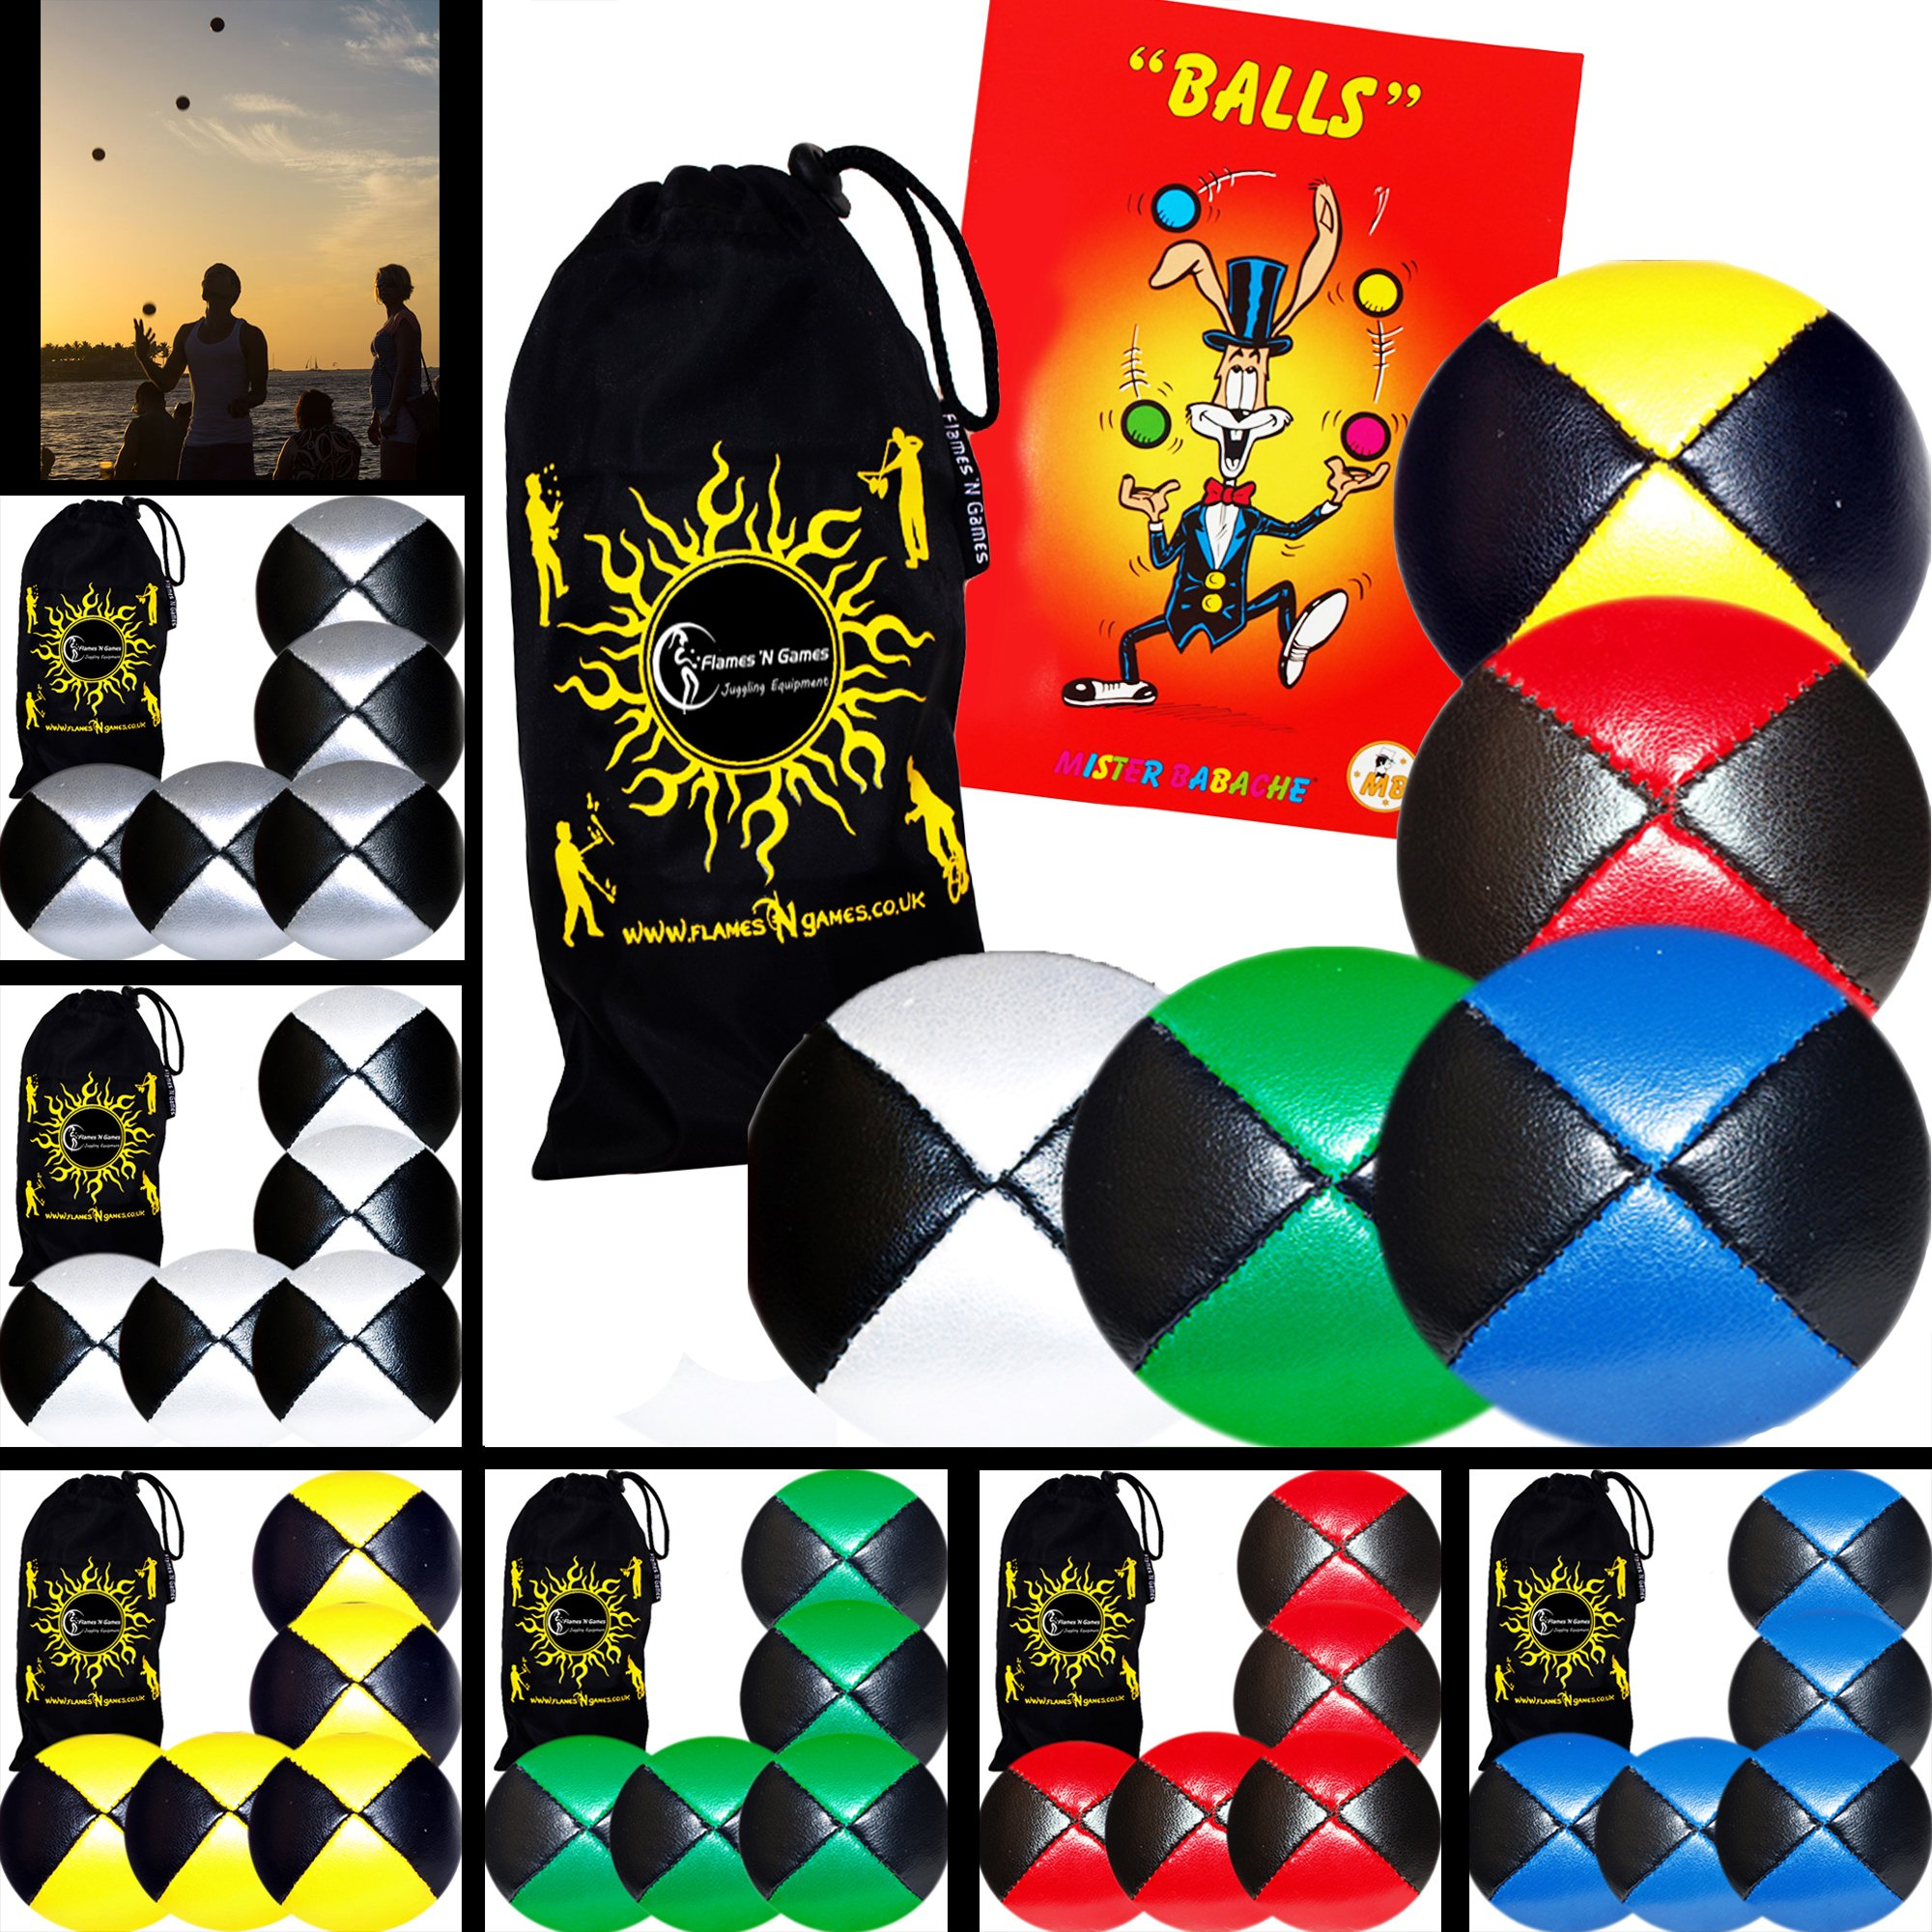 5x Pro Thud Juggling Balls - Deluxe (LEATHER) Professional Juggling Ball Set of 5 + Mister Babache Ball Juggling Book of tricks, and Fabric Travel Bag! (Mix of colors) Color: Mix of colors Model: by Flames N Games Juggling Ball Sets